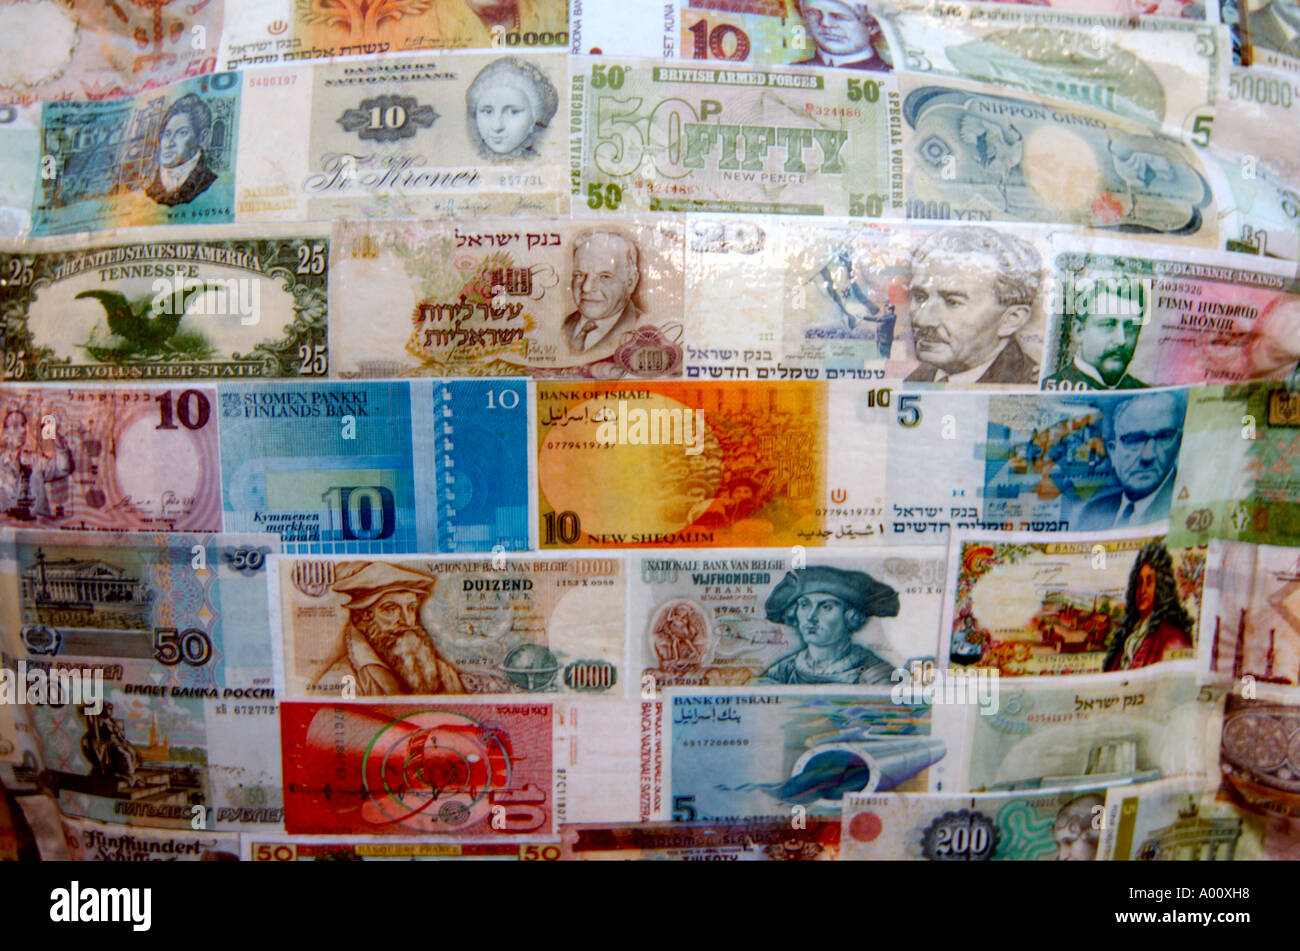 A collection of paper notes from different countries and currencies - Stock Image